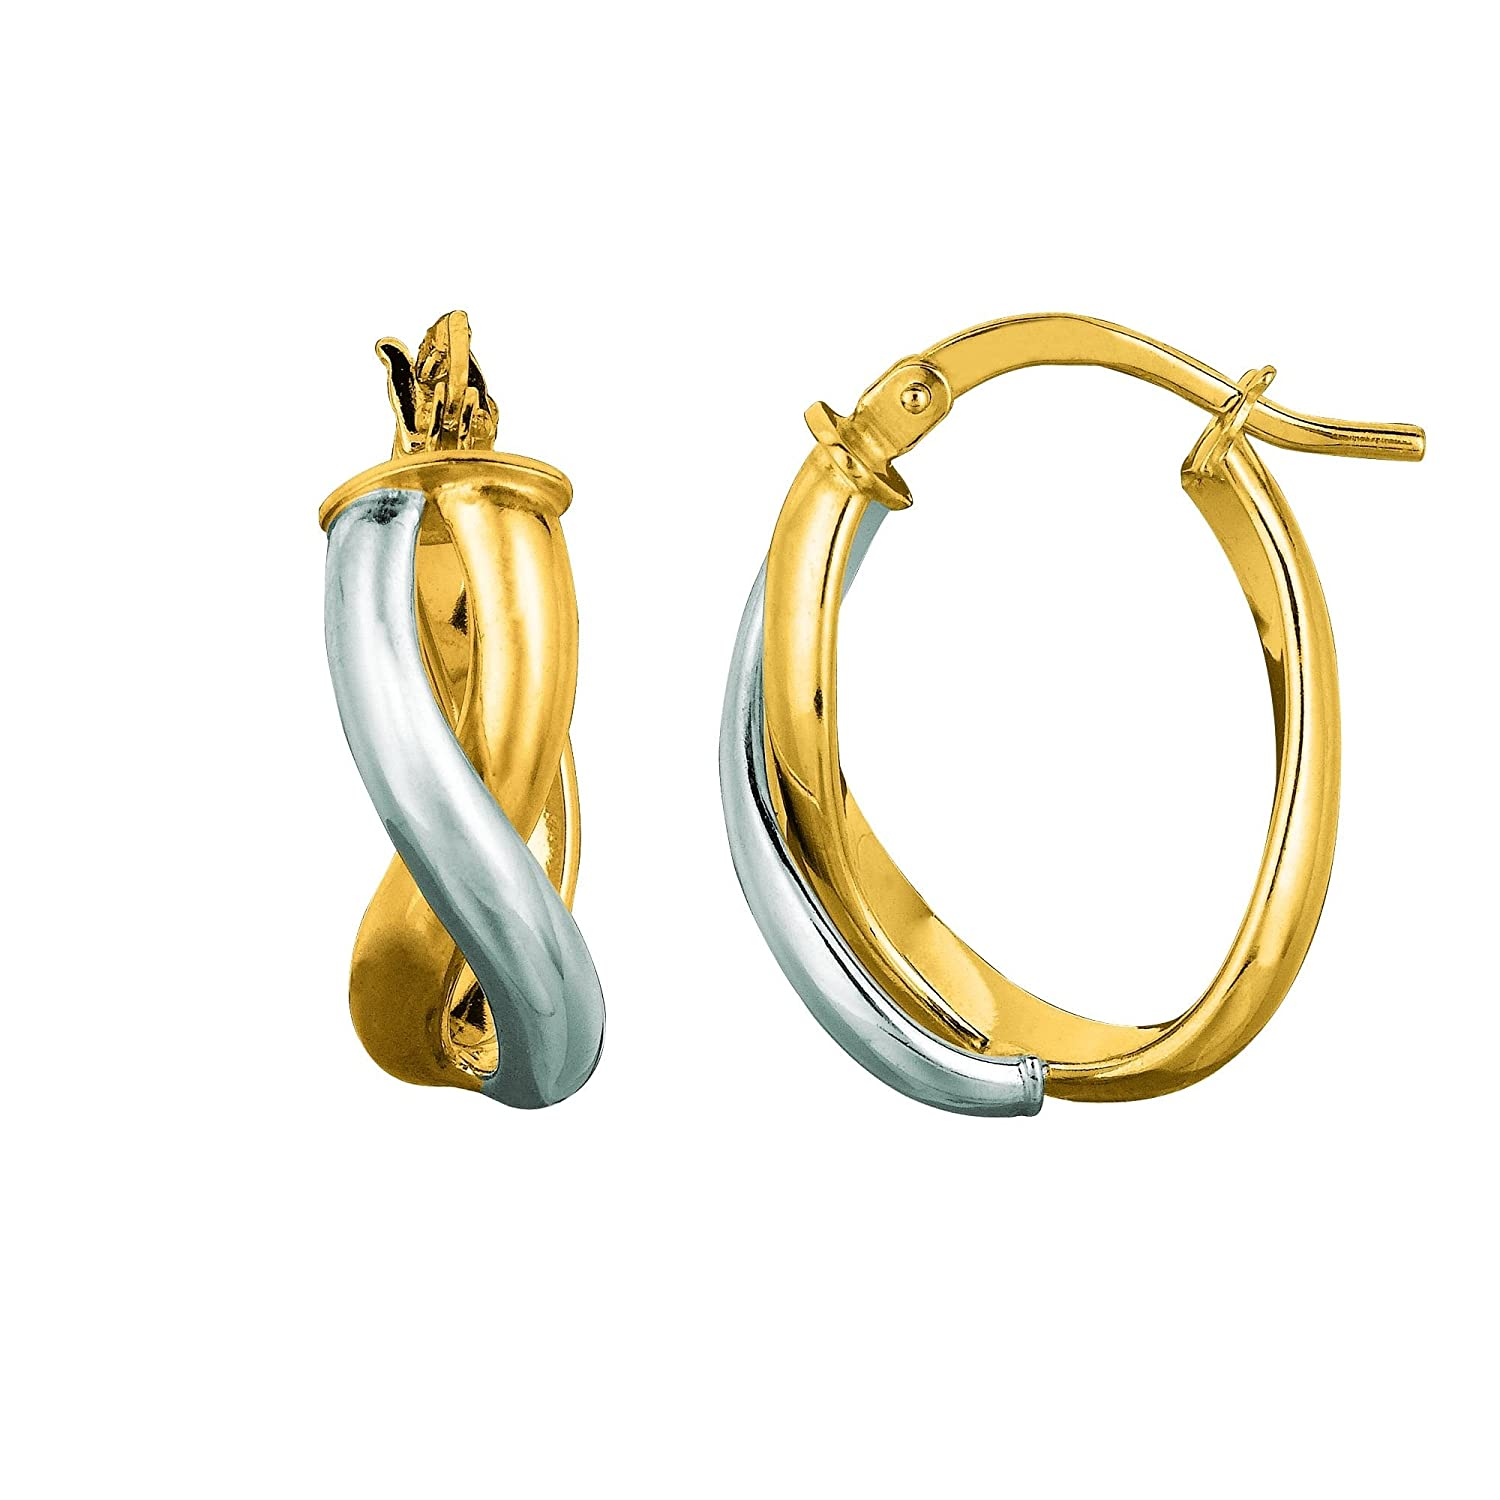 14K Yellow and White Gold Shiny Oval Shape Double Row Twisted Hoop Earring with Hinged Clasp